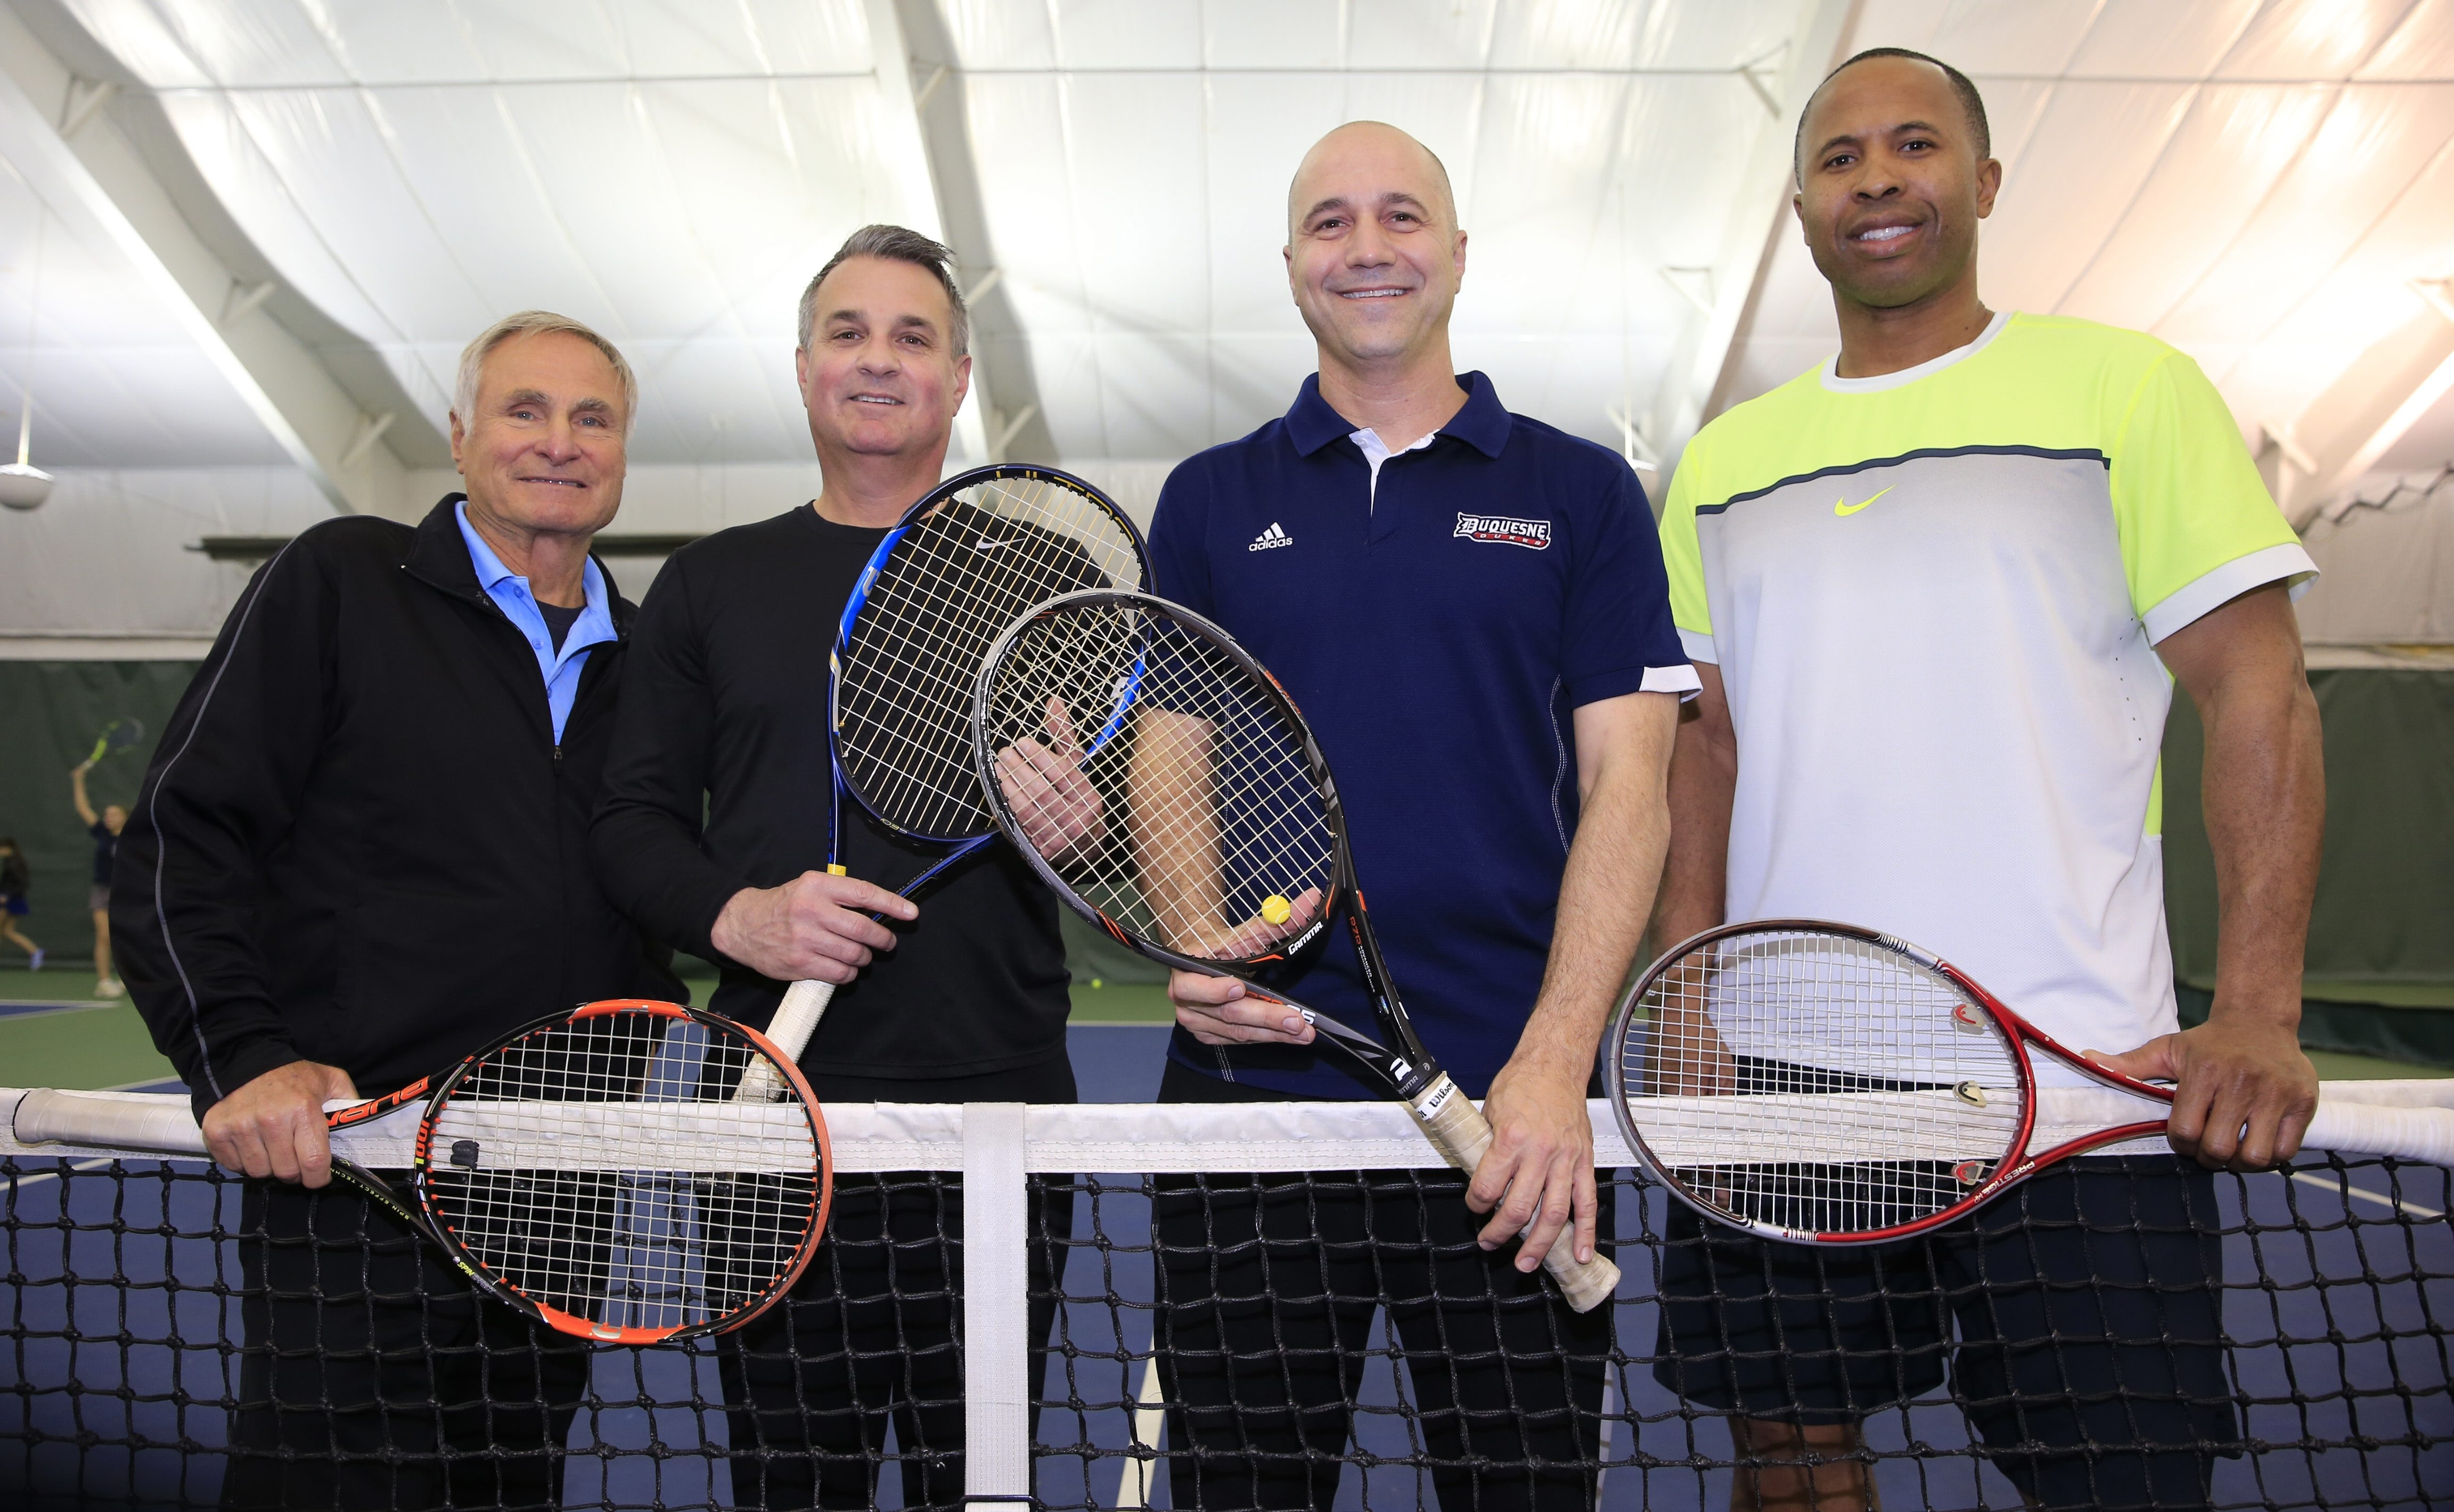 Rob Gregoire, third from left, is the new tennis director at Village Glen and heads a staff or pros that includes, from the left, Tom LaPenna, Russ Tringali Jr. and Ross Nwachukwu.